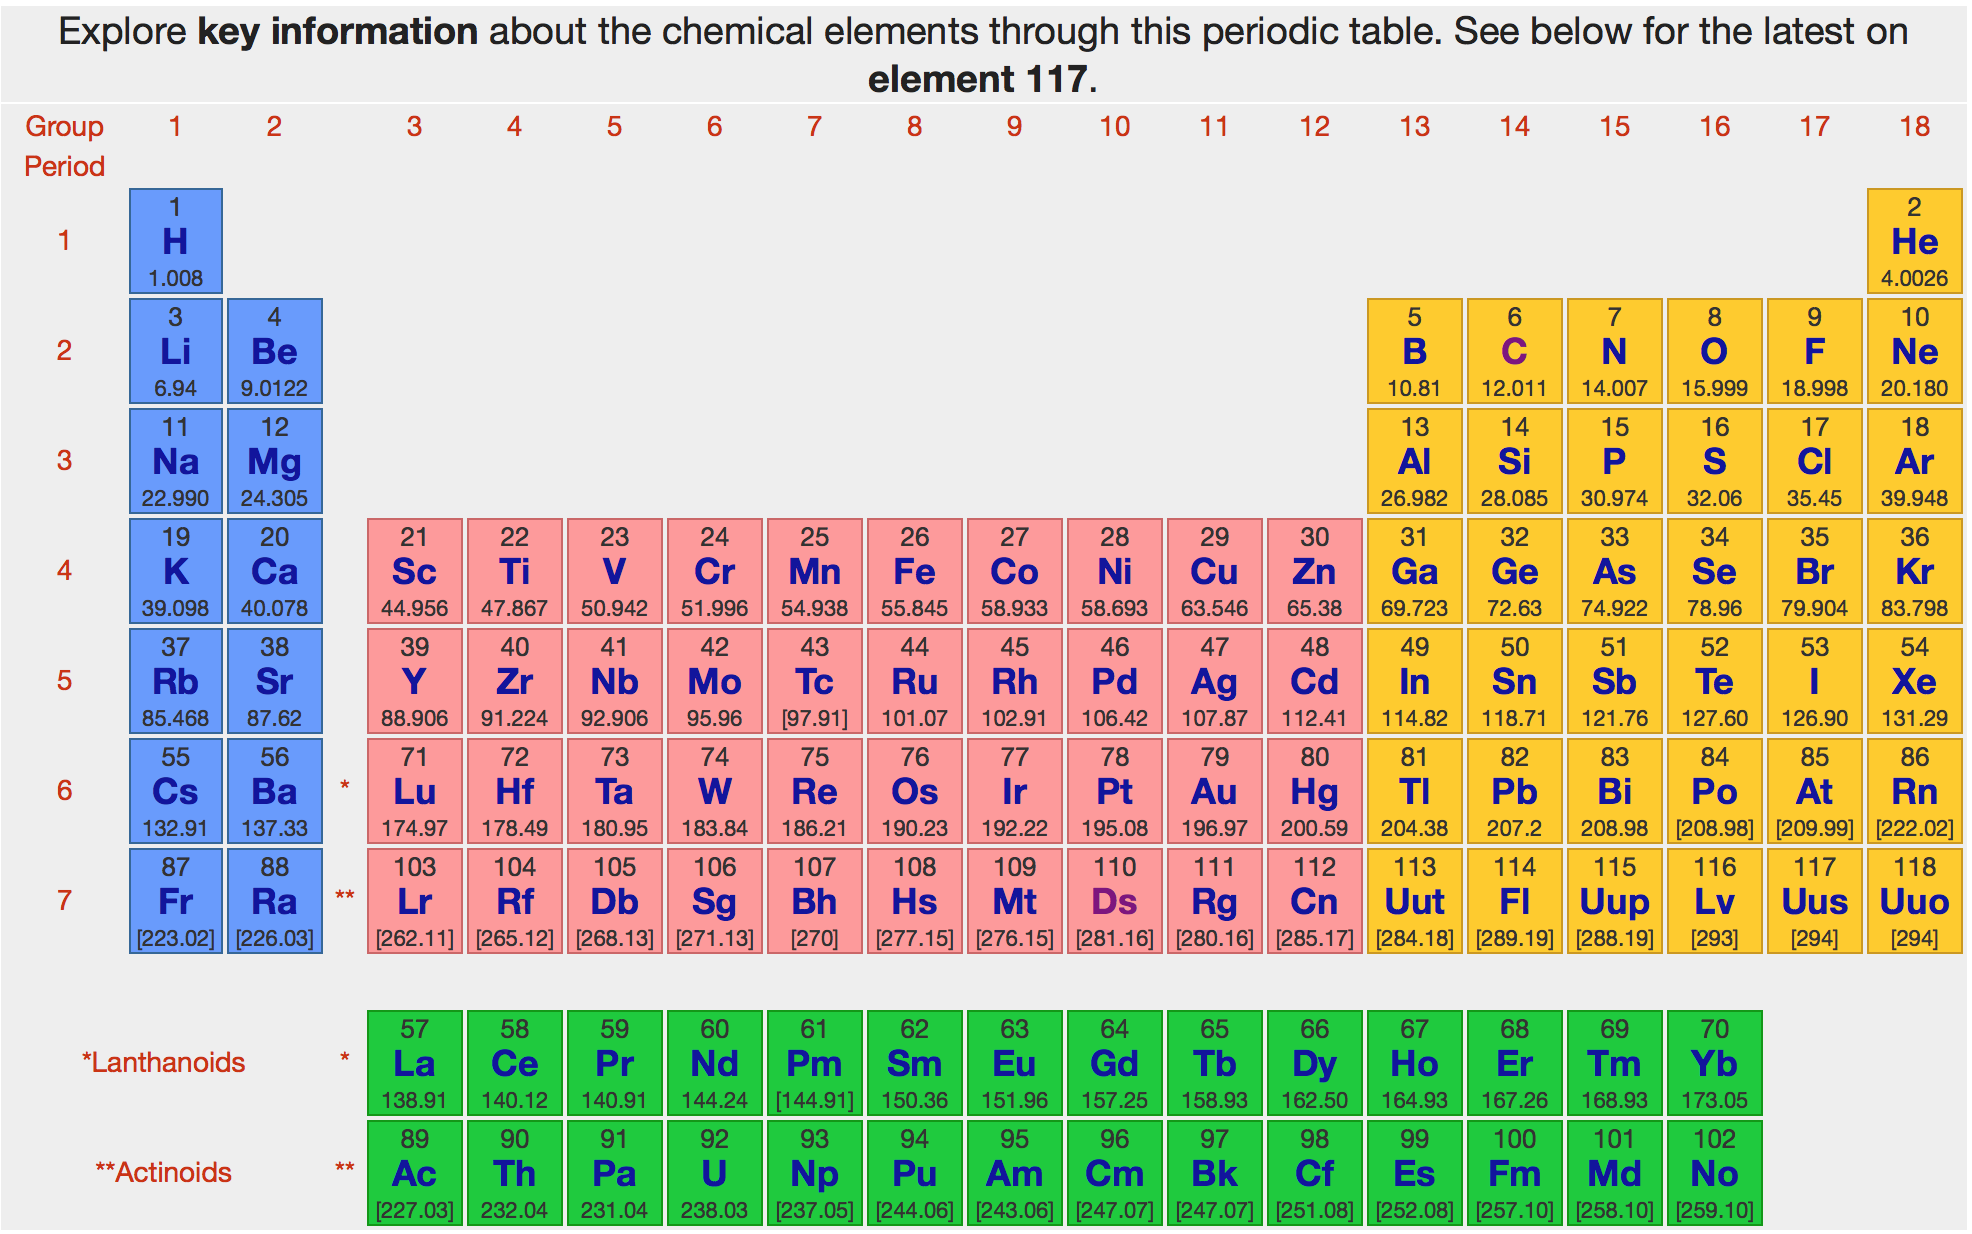 1950 modern periodic table chemistry history pinterest 1950 modern periodic table chemistry history pinterest periodic table and chemistry gamestrikefo Choice Image